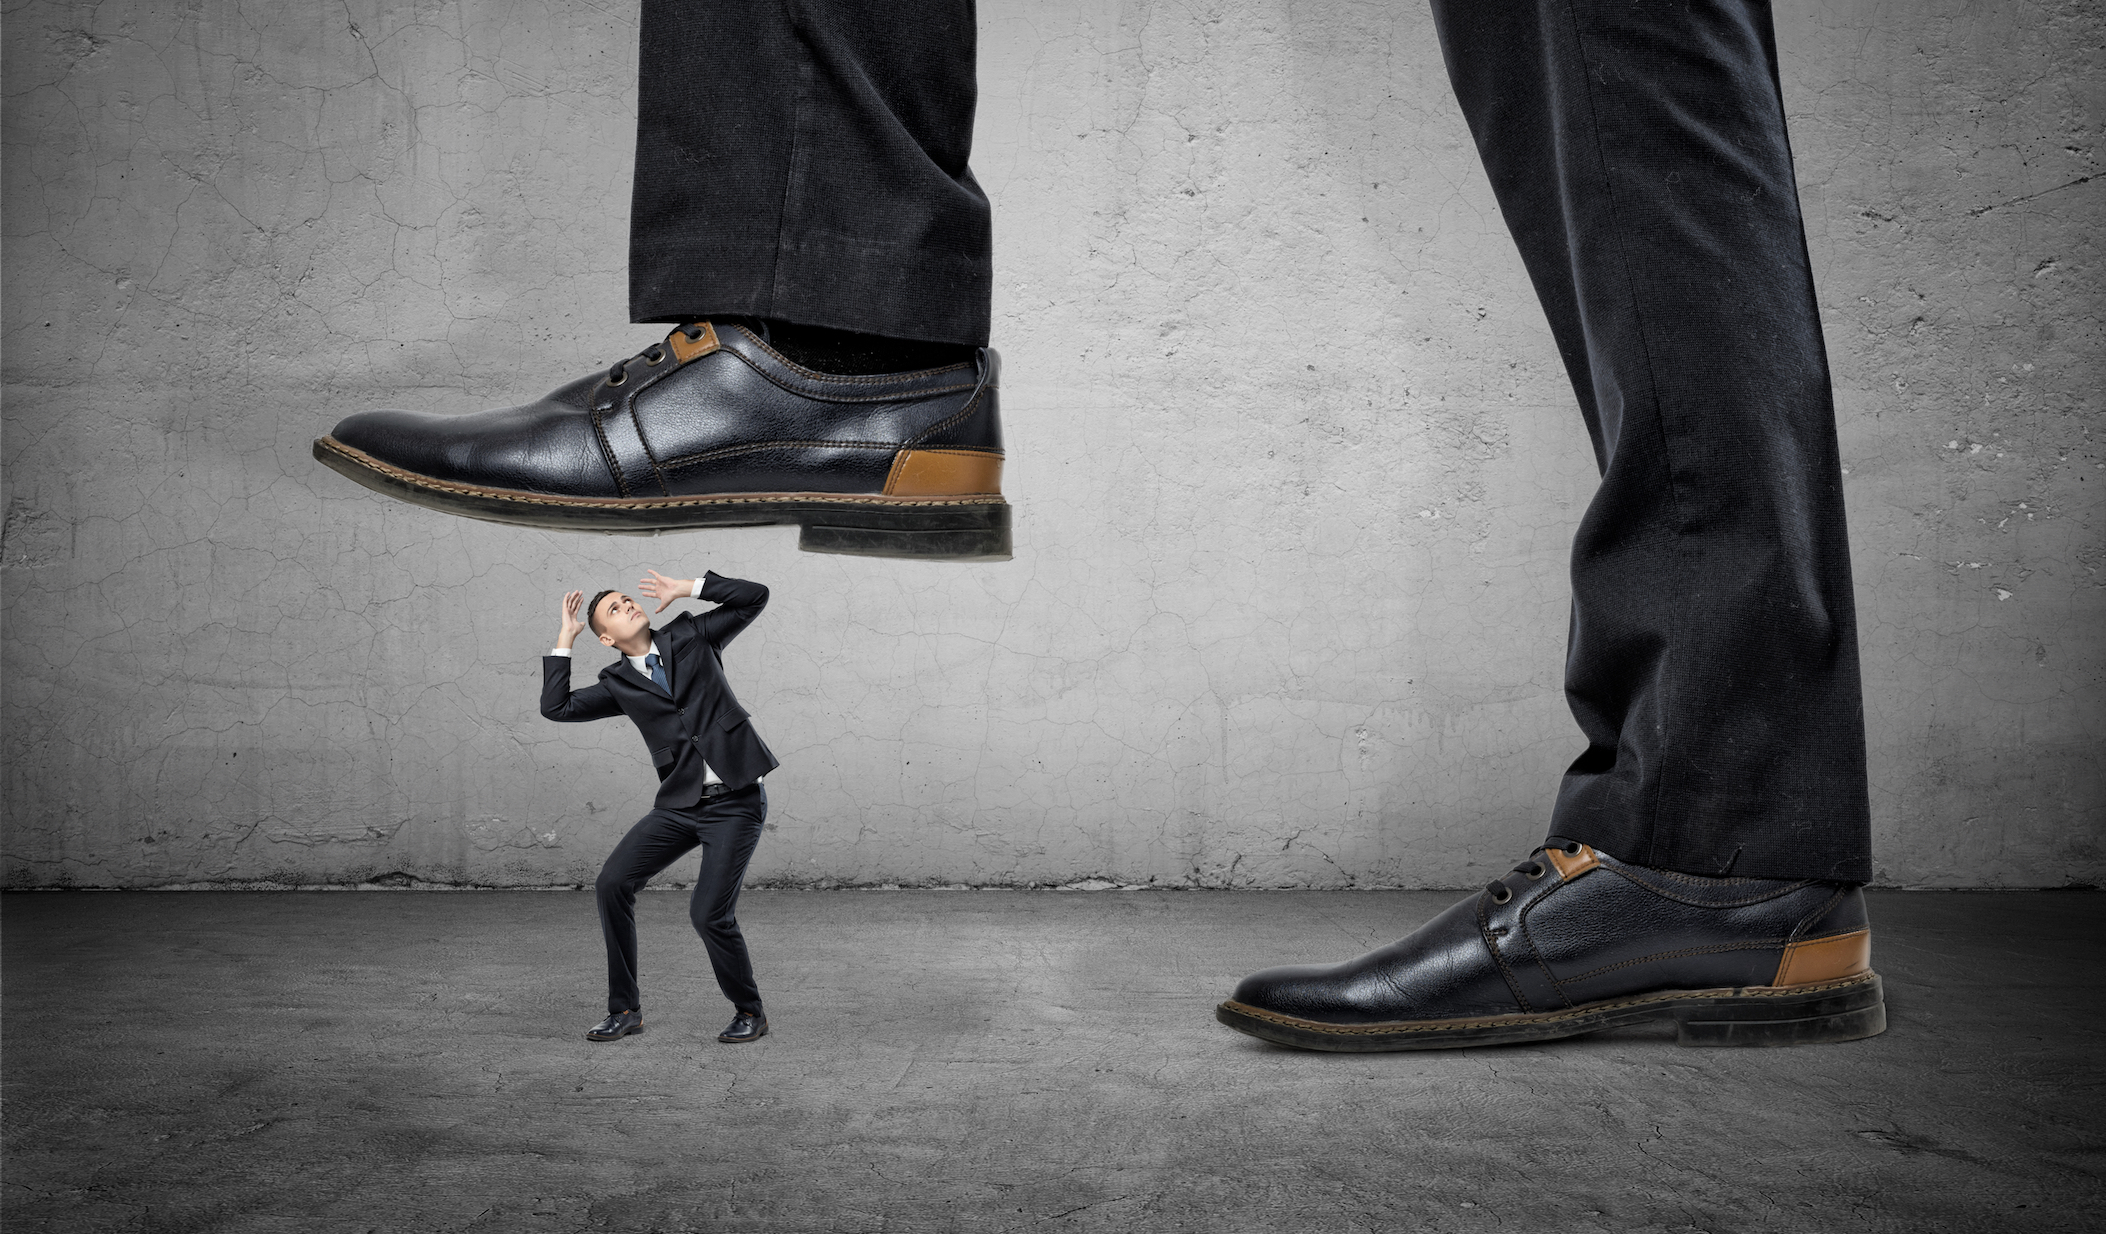 While some may think narcissism and ruthless personalities make a great leader, a new study has found it's actually bad for business.